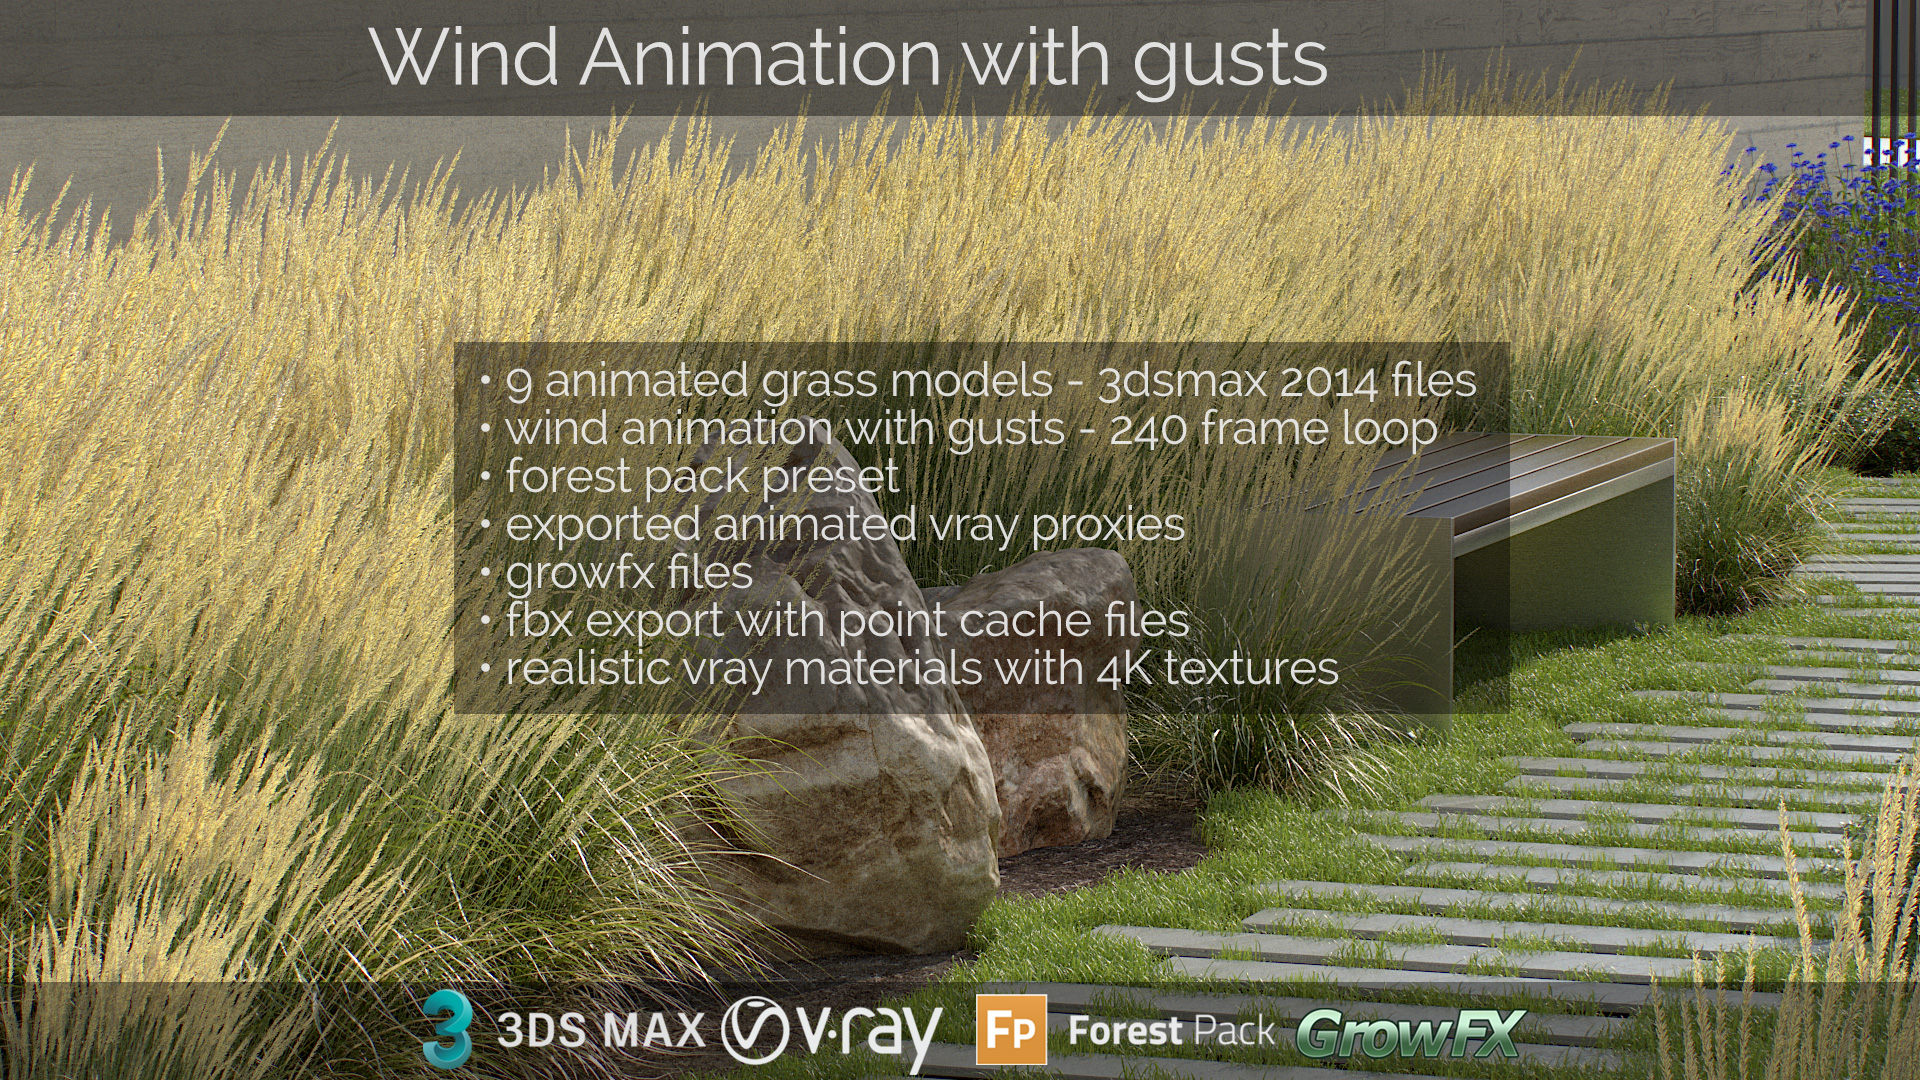 Feather Reed Grass wind animation with gusts